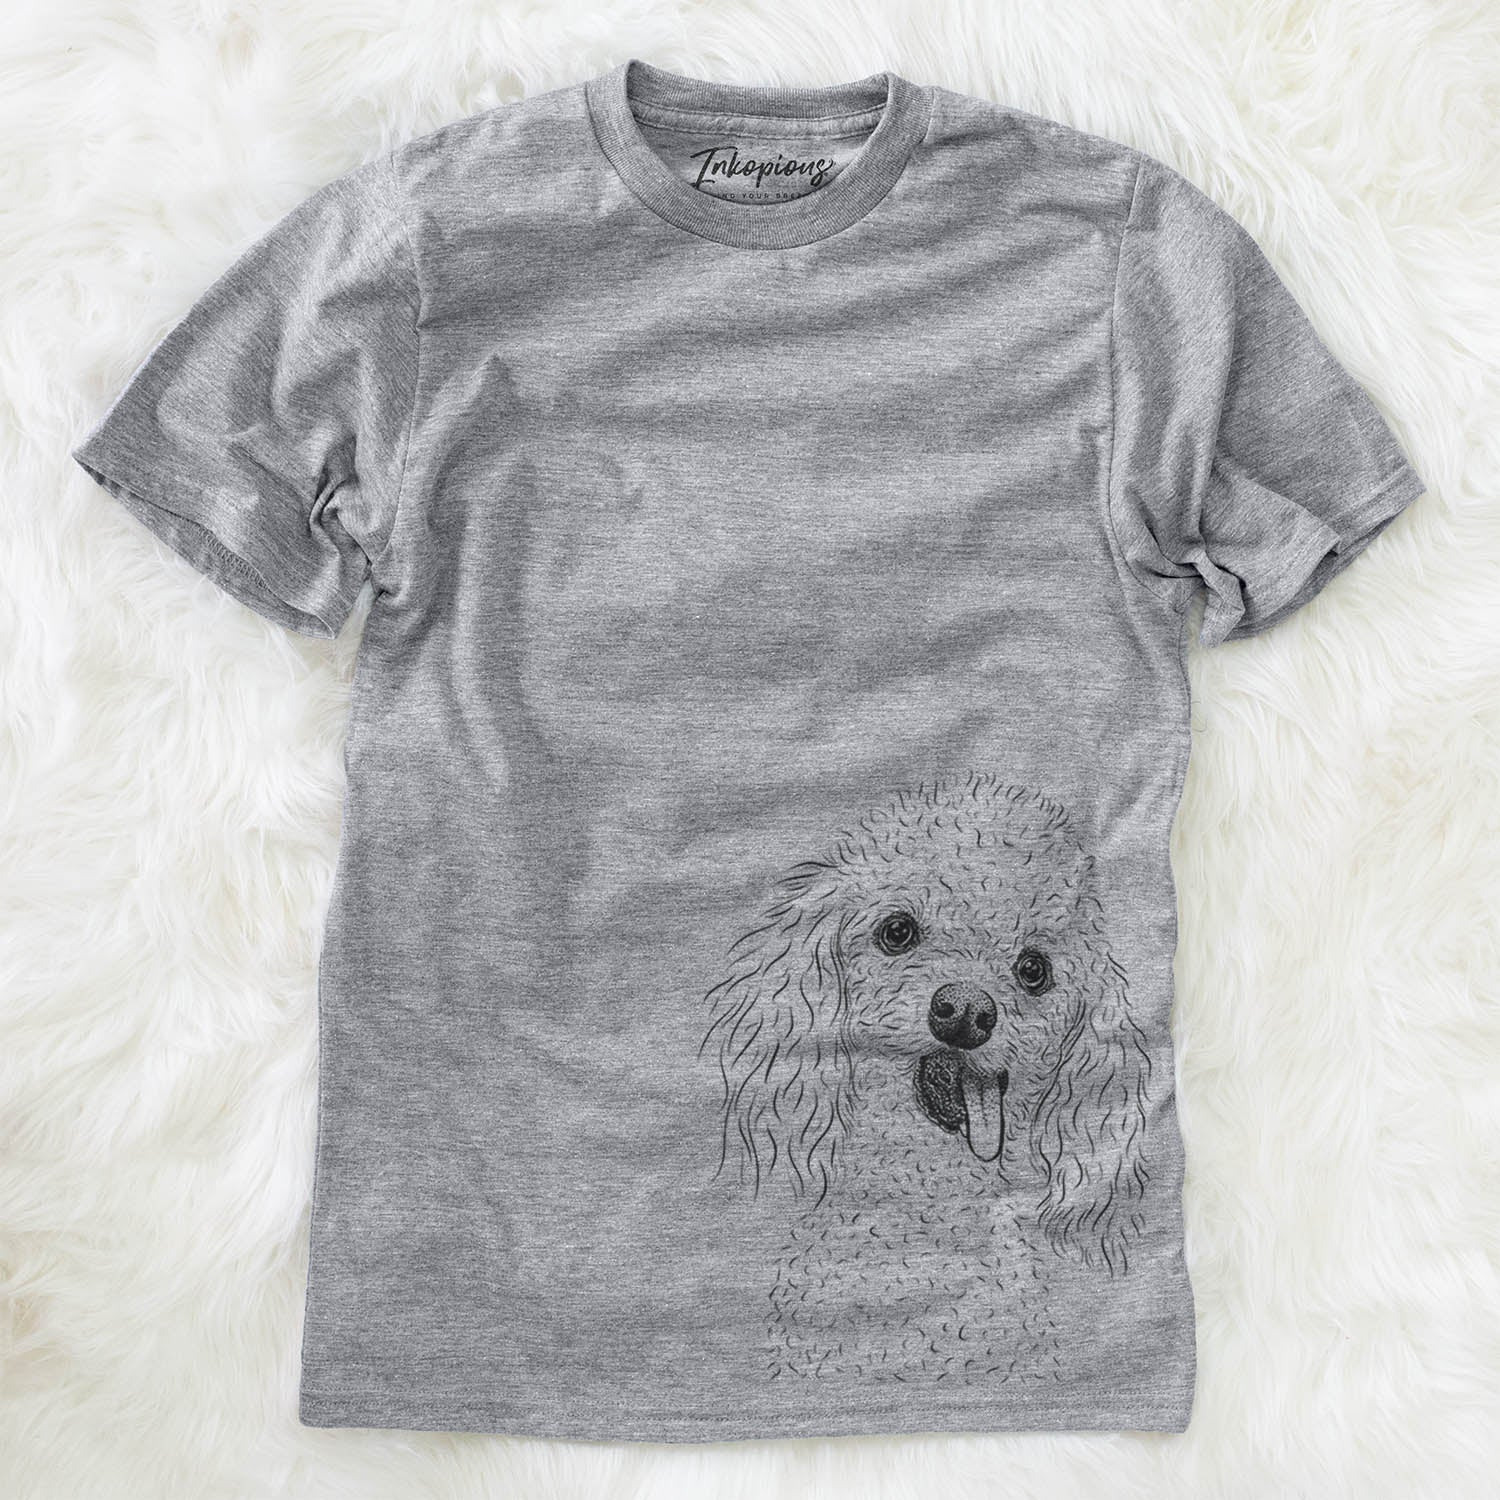 Super Joey the Toy Poodle - Unisex Crewneck